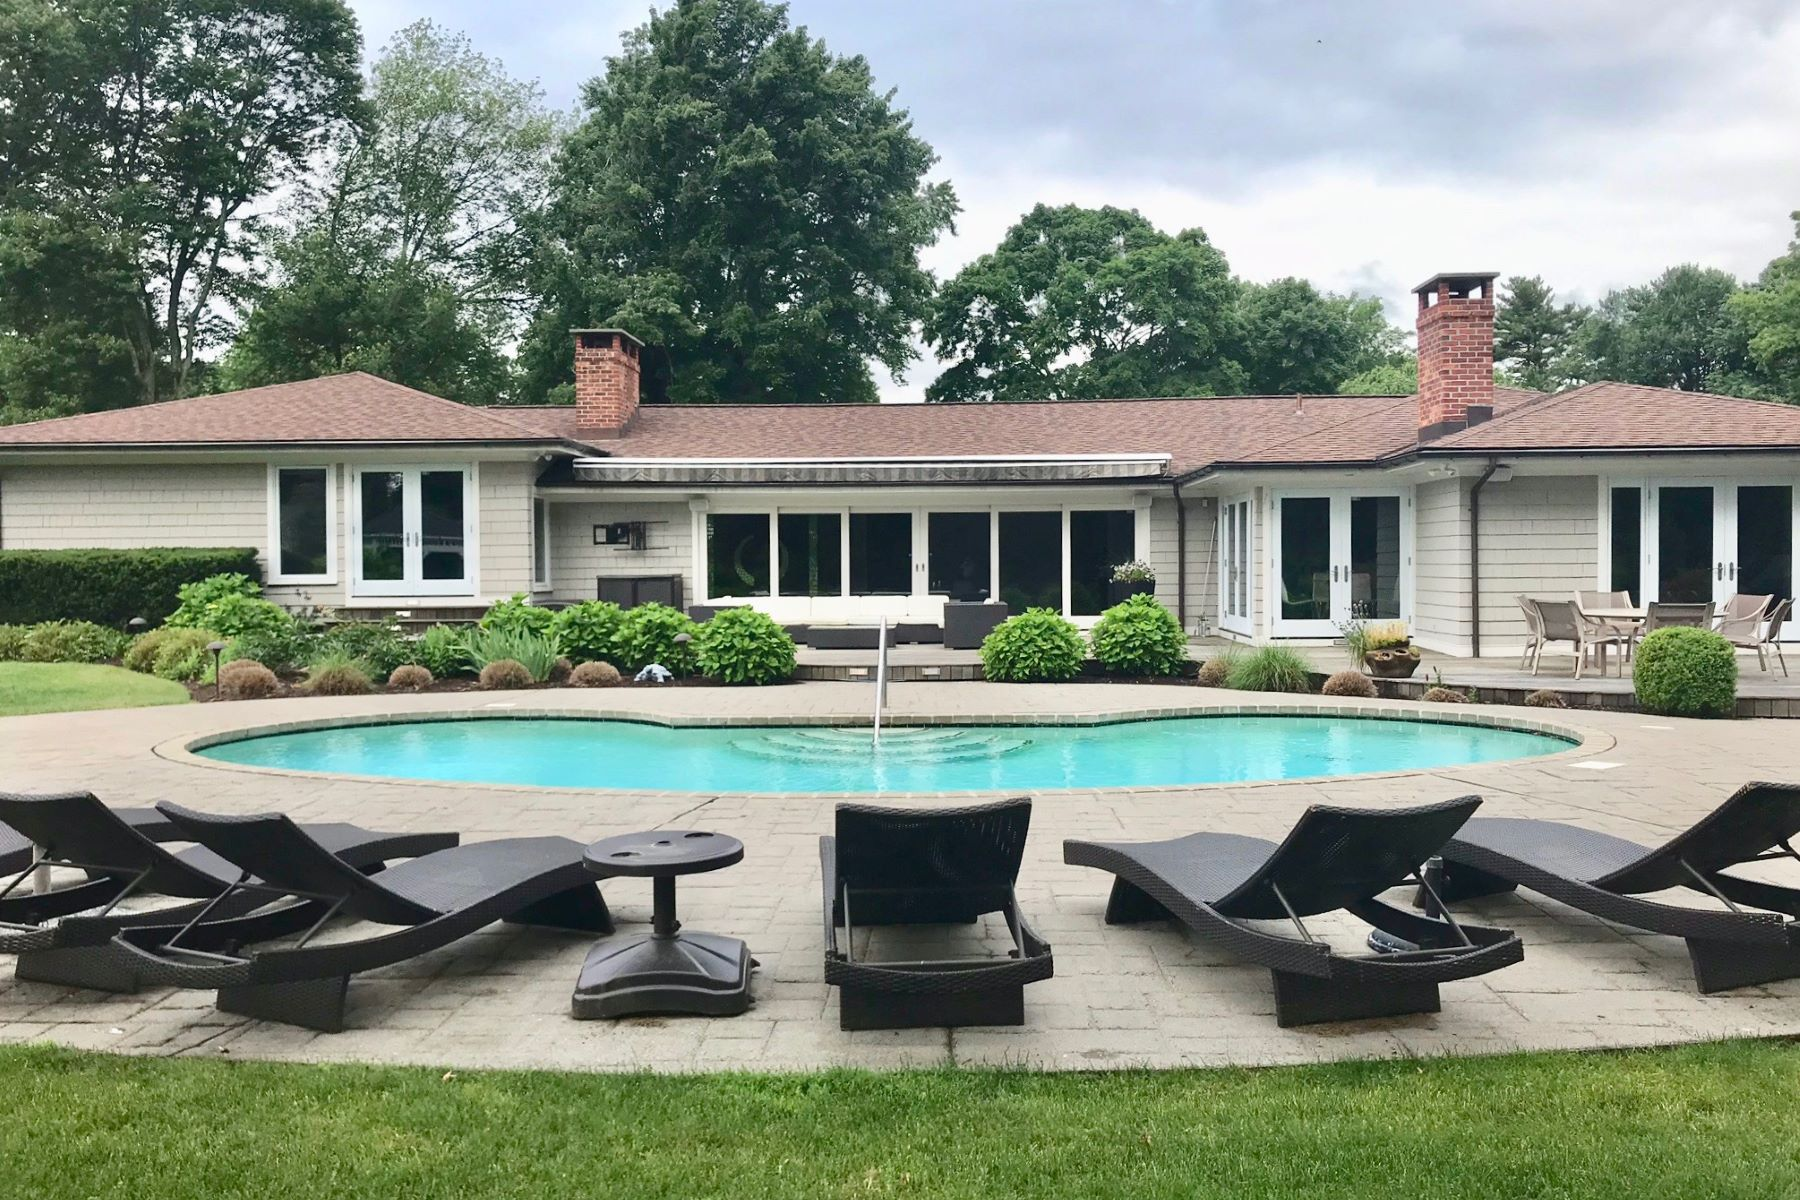 Single Family Homes for Sale at Pristine & Beautifully Renovated Ranch in Sought After Sasqua Hills 20 Sasqua Road Norwalk, Connecticut 06855 United States